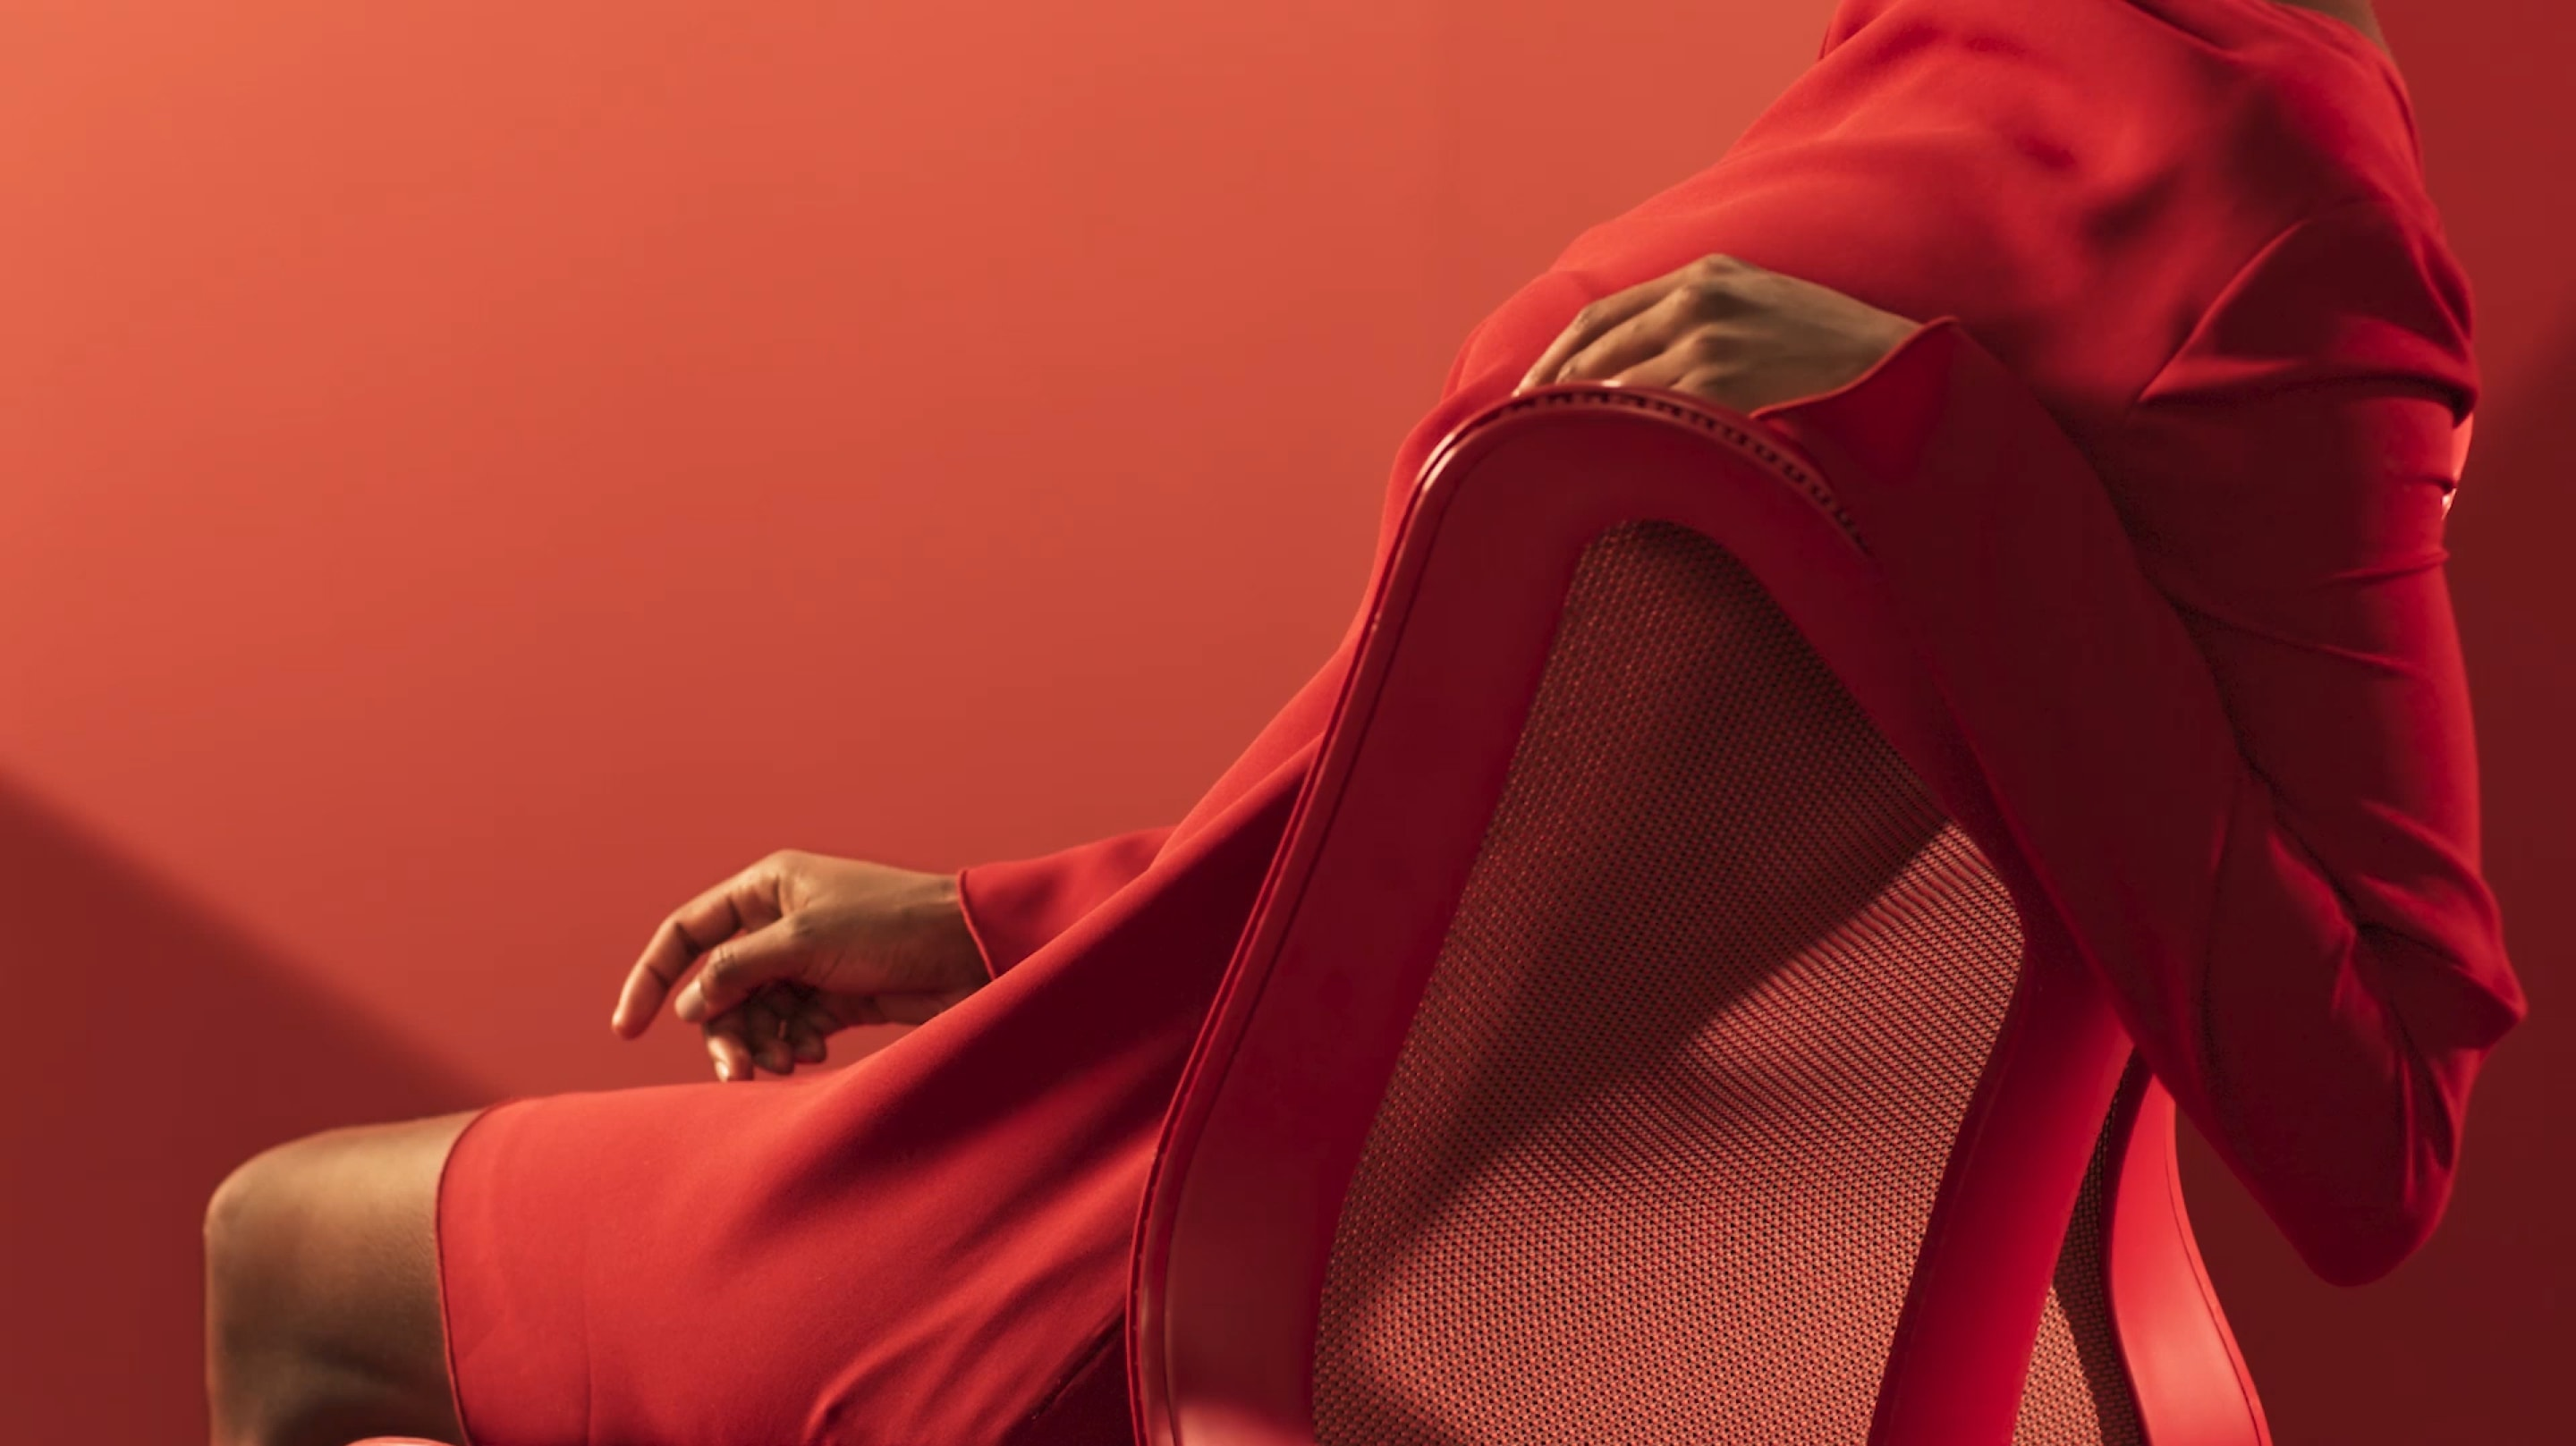 A woman in a red dress reclines with her arm over the backrest of a Canyon red Cosm Chair. Select play button to start video.